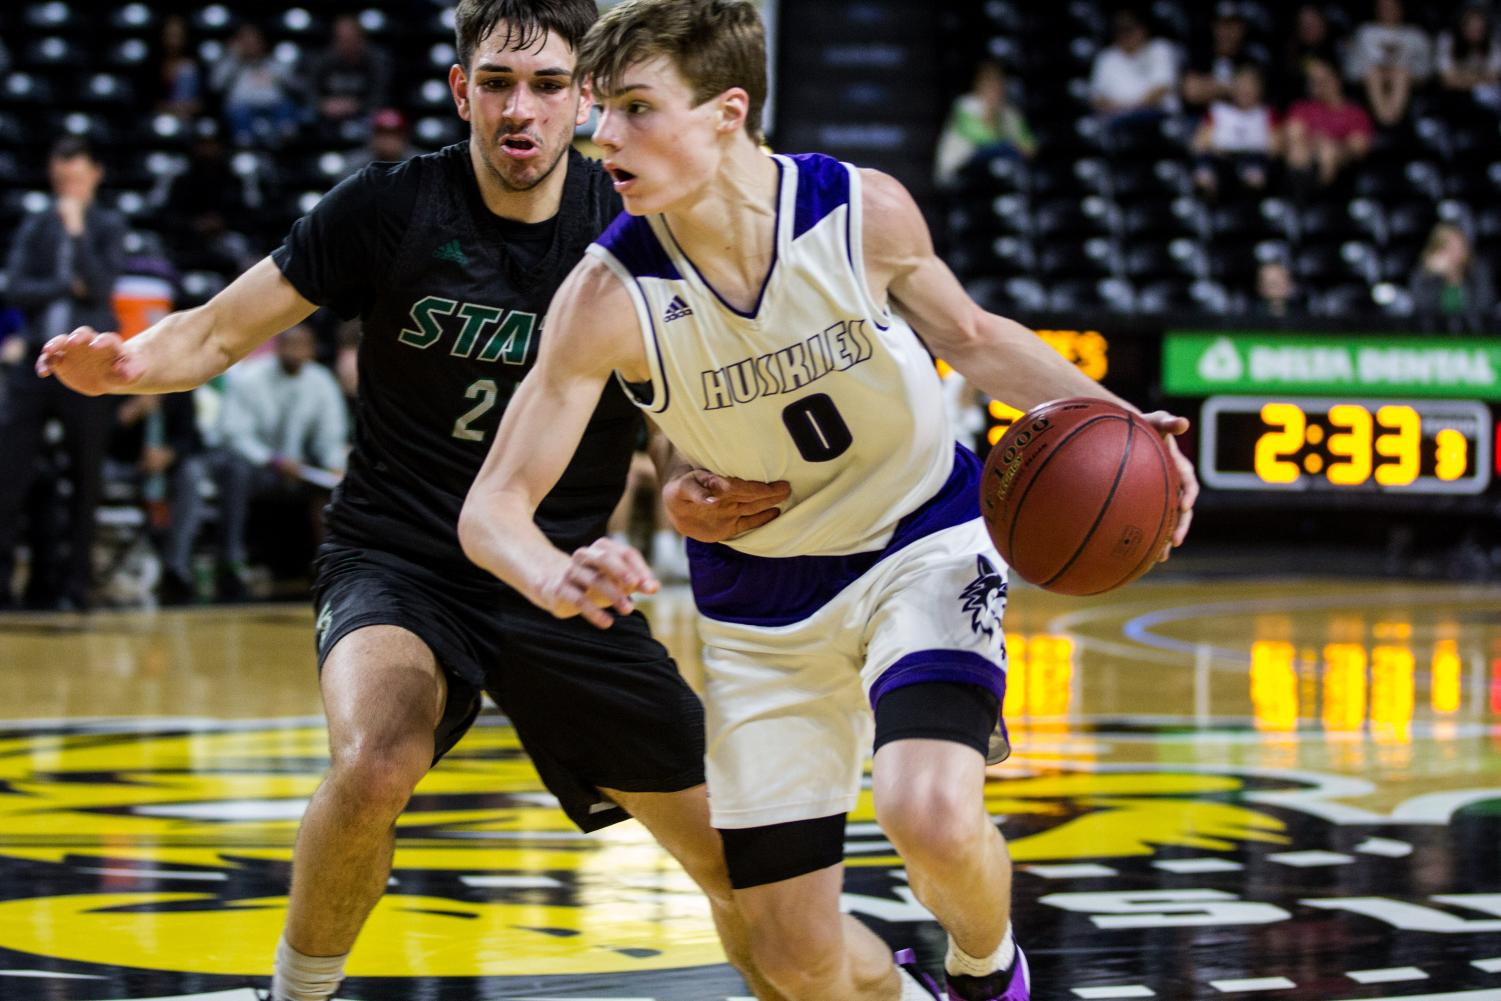 Blue Valley Northwest junior guard Christian Braun (0) dribbles by Free State senior guard Zach McDermott during the third quarter of the Huskies matchup with Lawrence Free State March 10 at Charles Koch Arena. The Huskies defeated the Firebirds, 51-40.